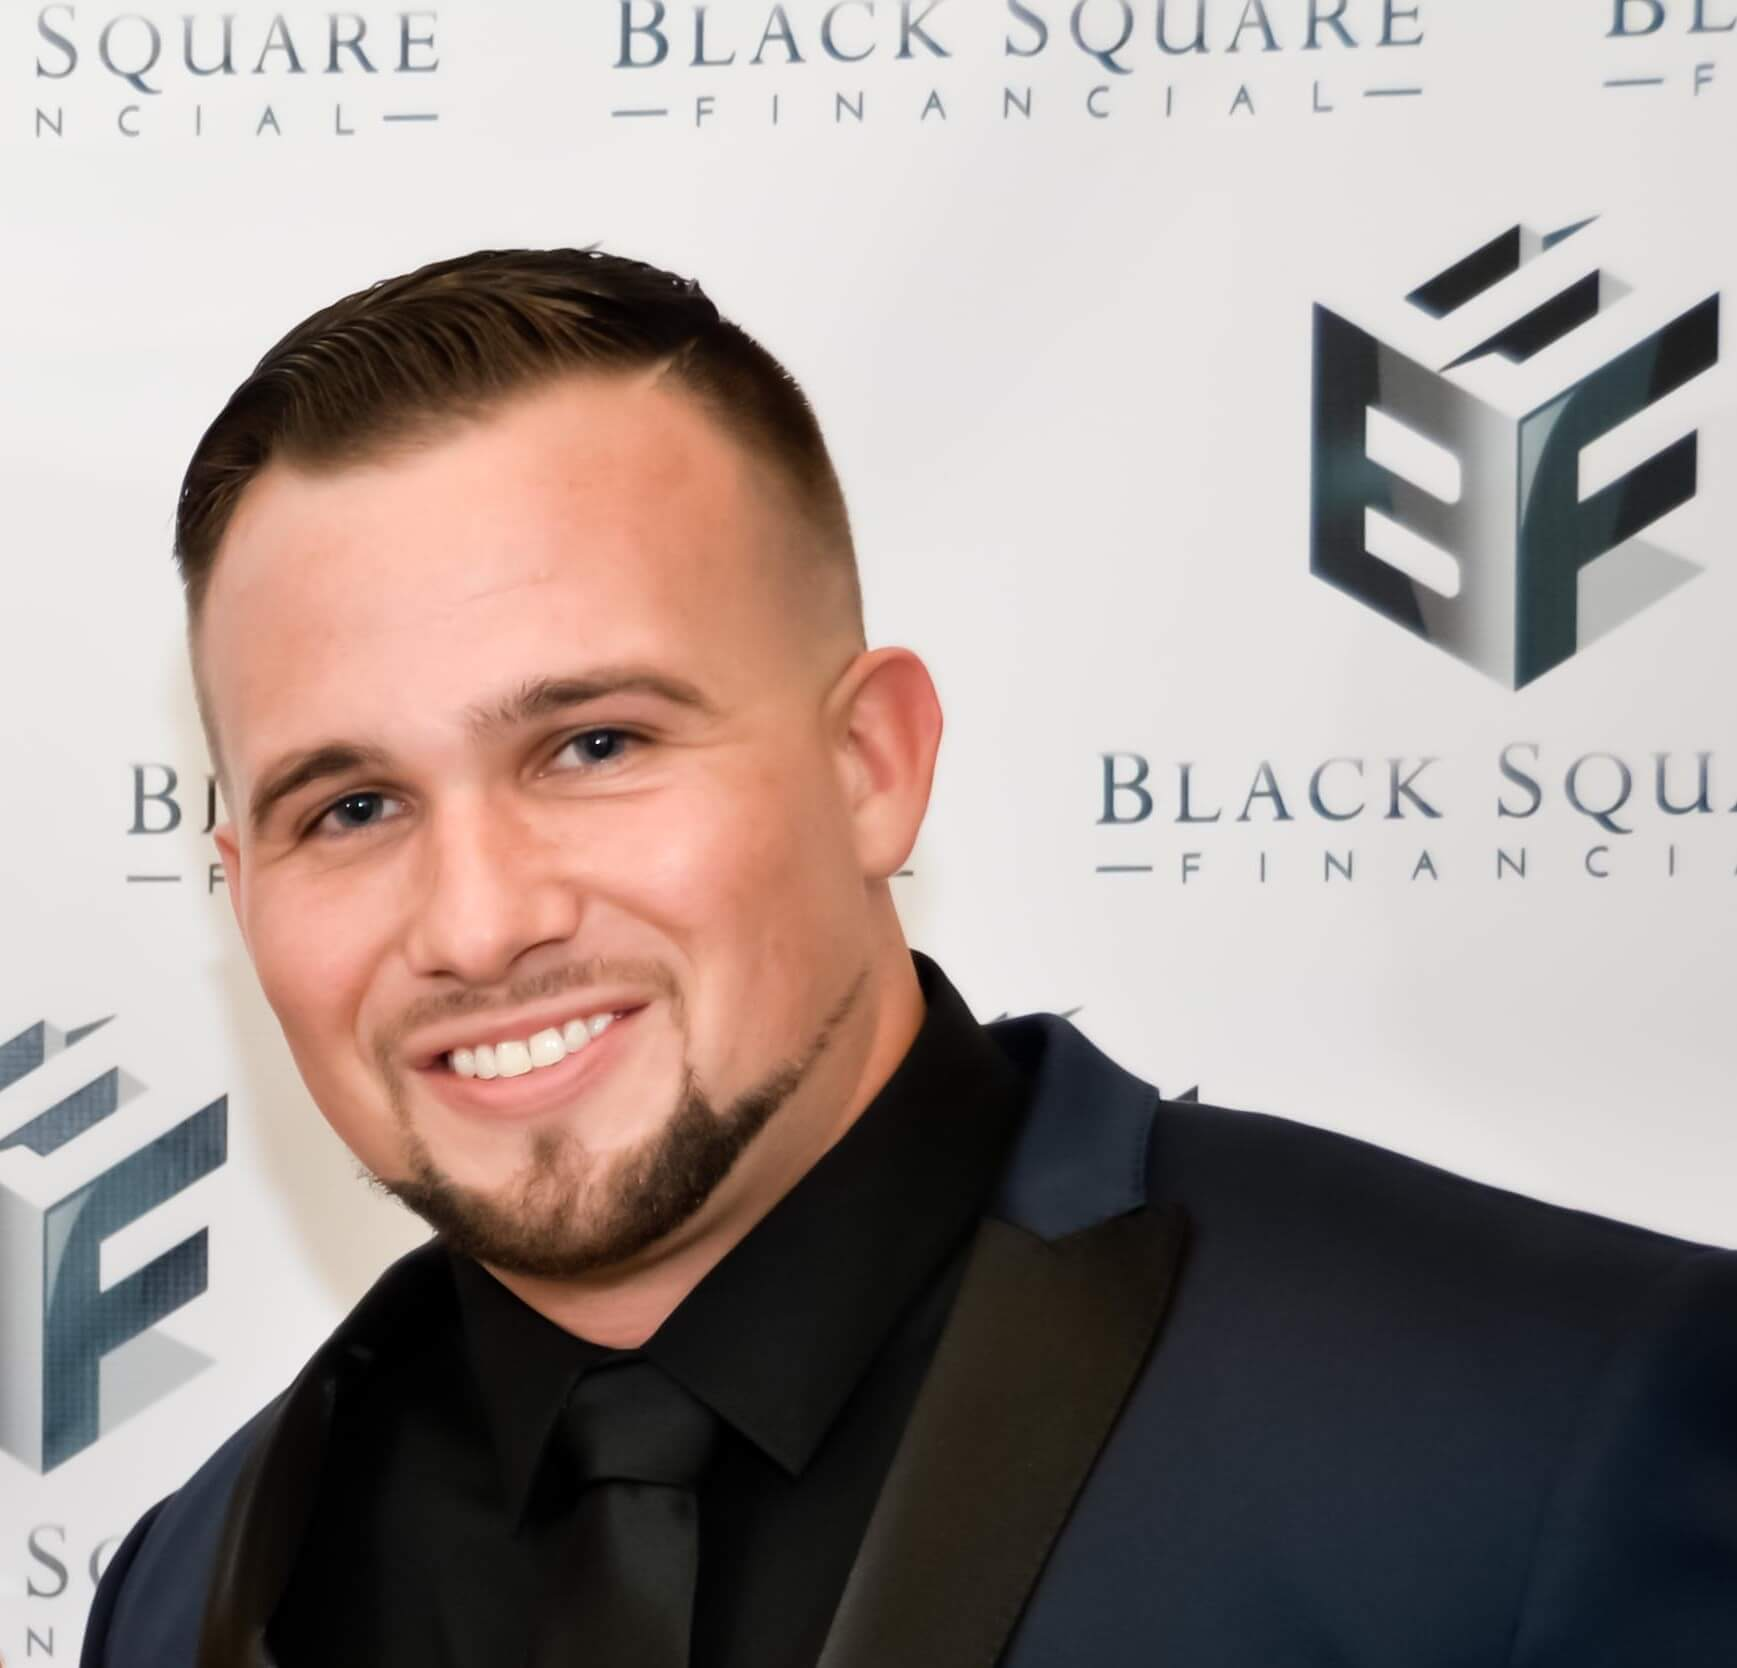 Jarrod Freeborn Co-Founder Black Square Financial Structured Settlement Brokers